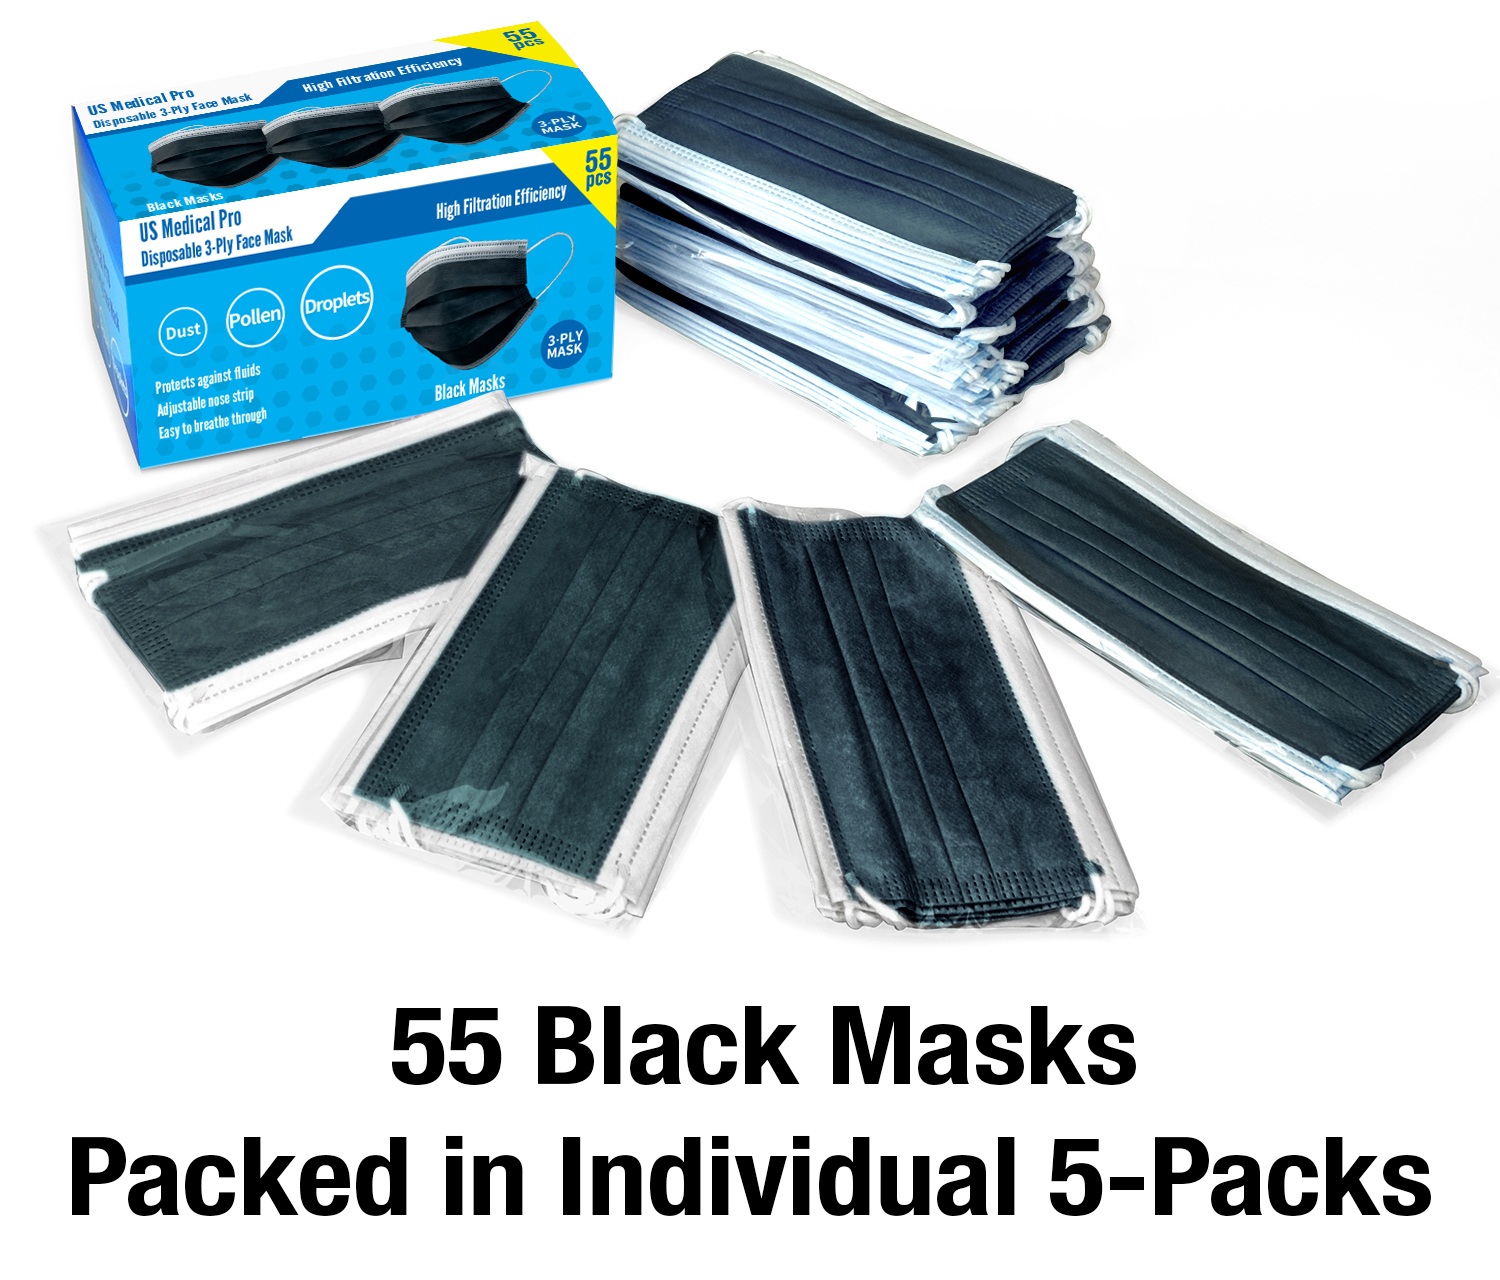 55 BLACK Pack Breathable Face Masks Cover Disposable Face Mask Ply Layer Filter System (55 Black)